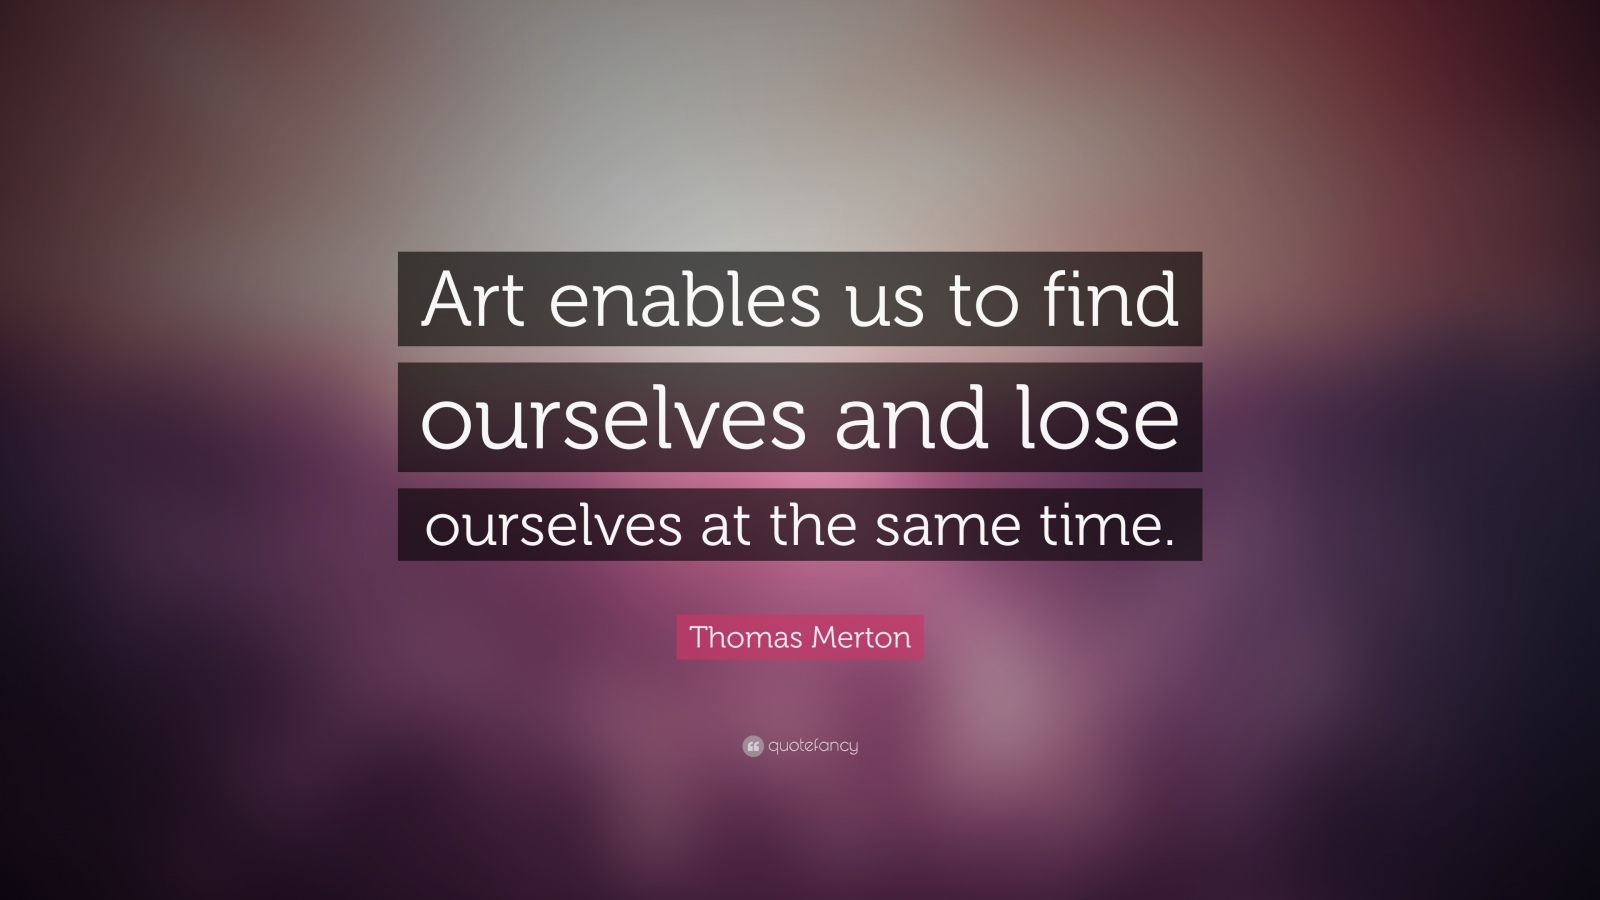 """Thomas Merton Quote: """"Art enables us to find ourselves and lose ourselves at the same time."""""""